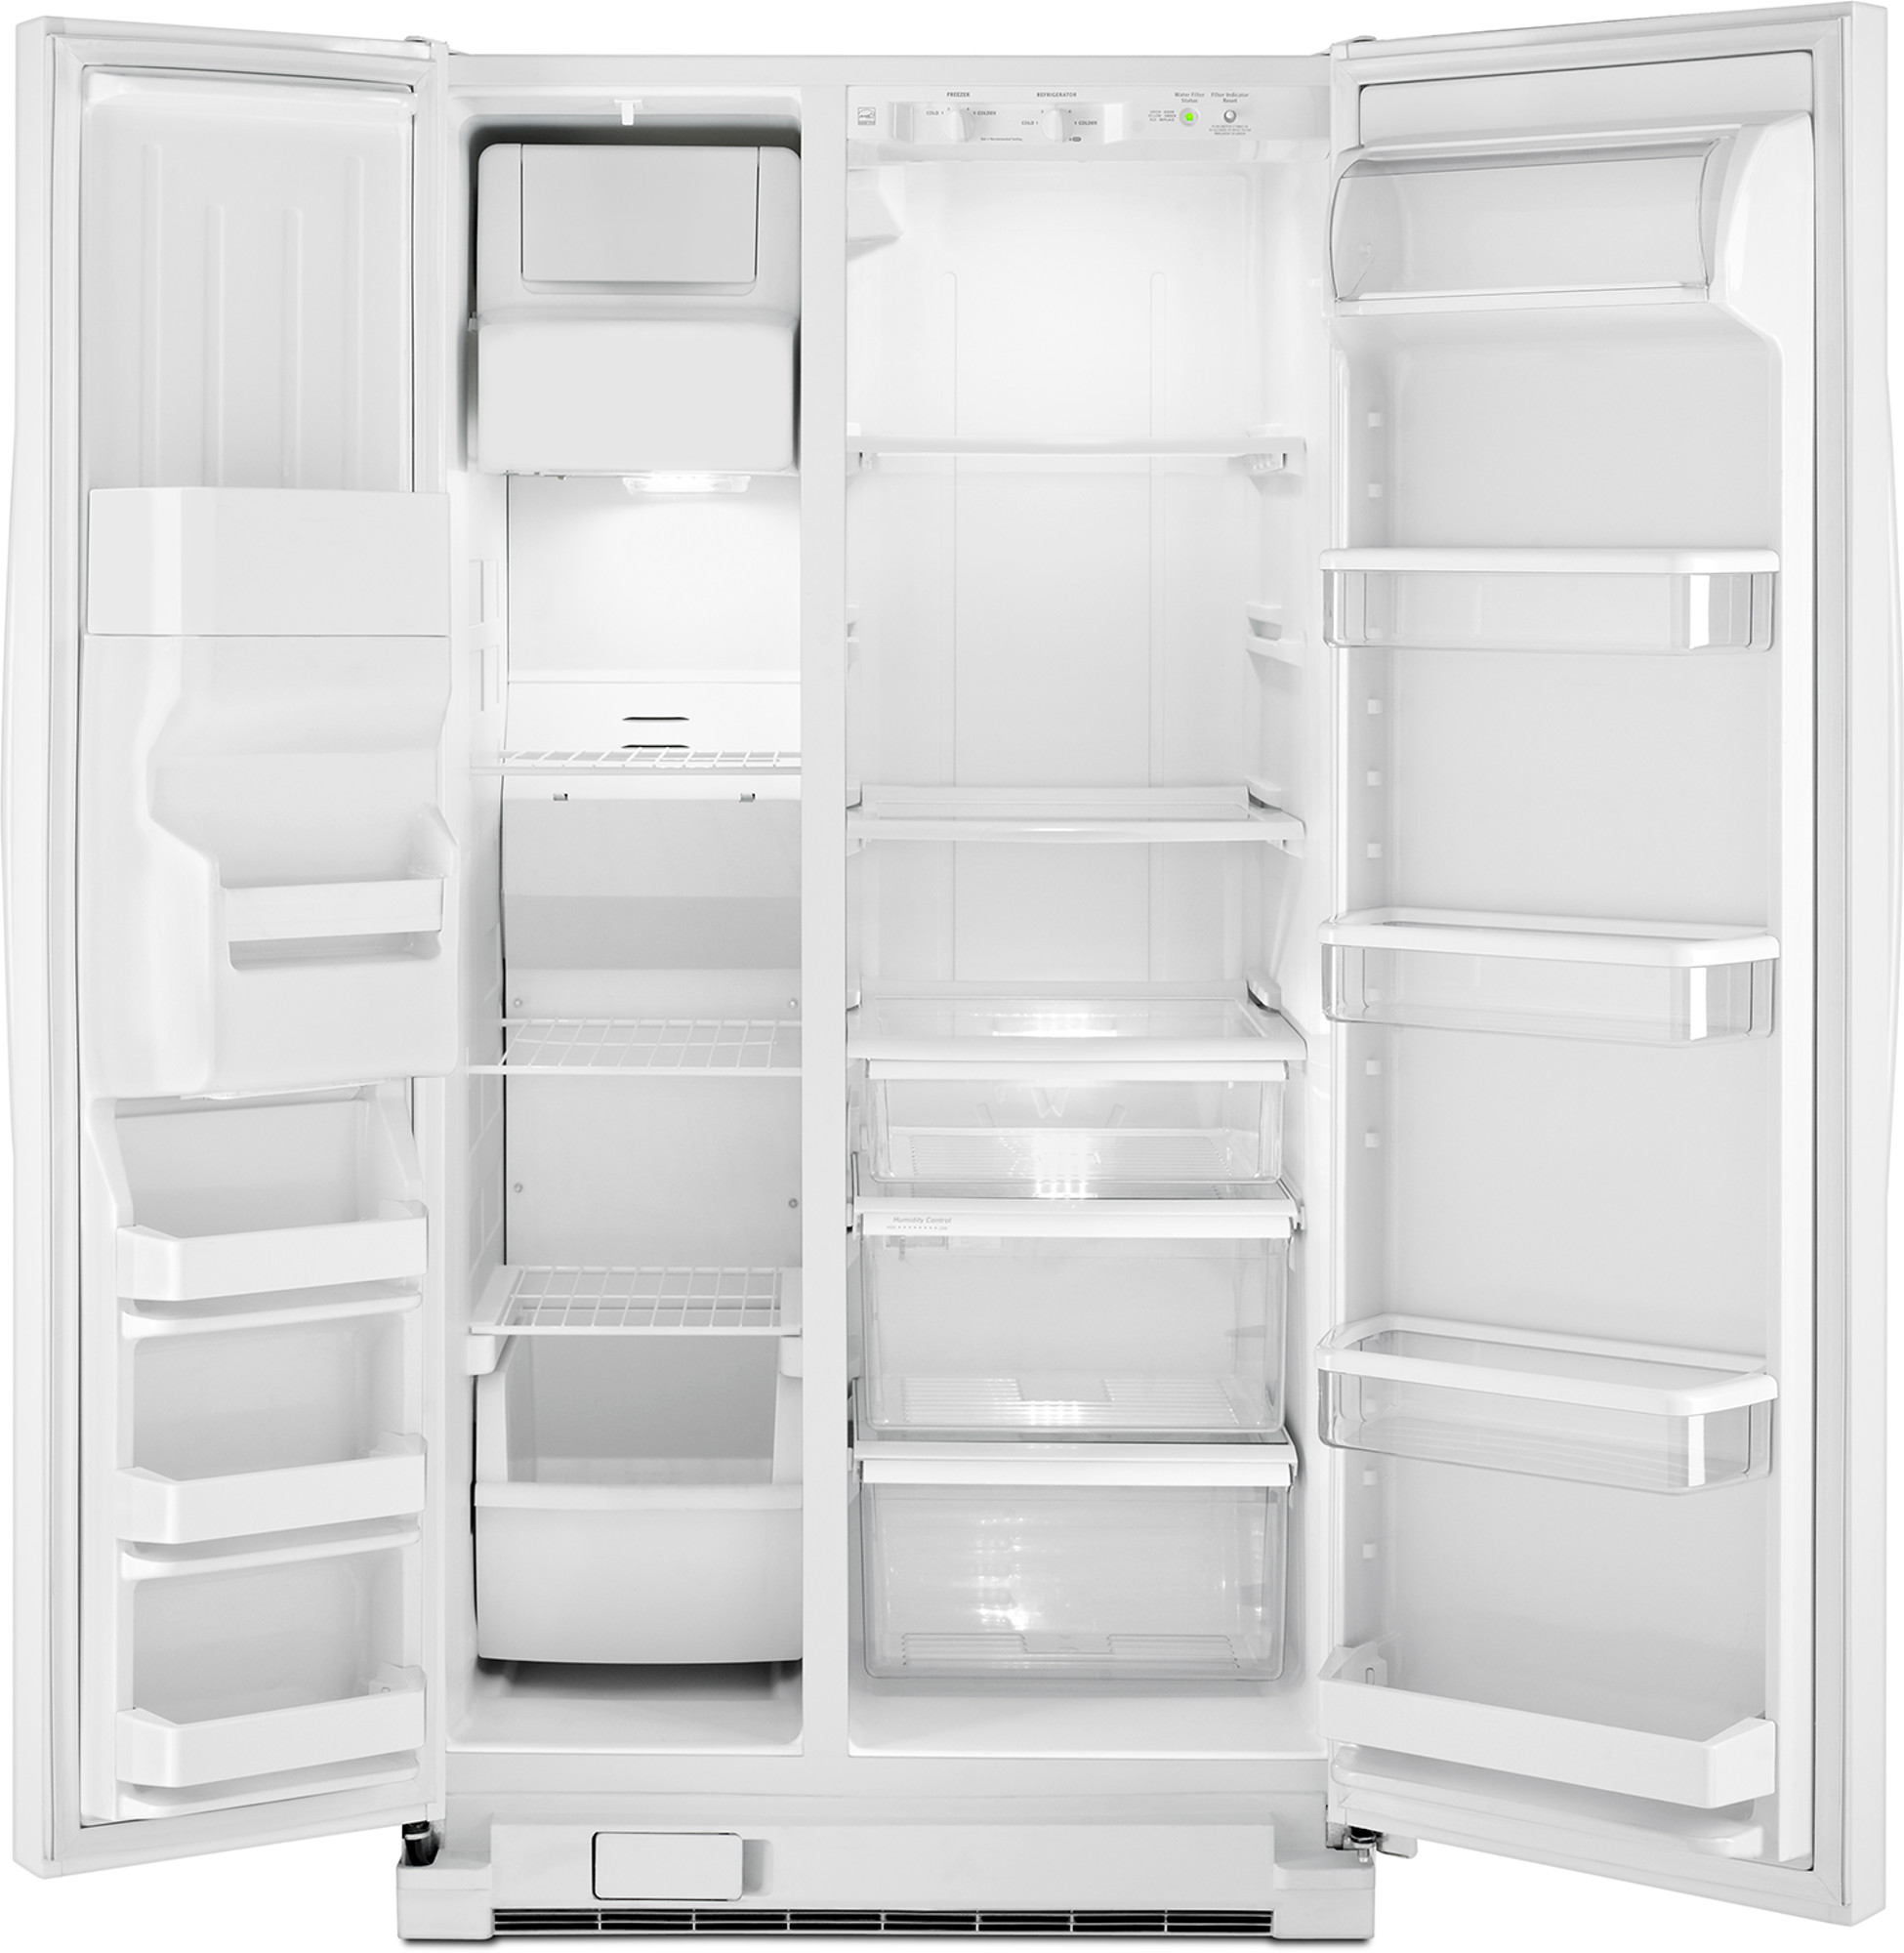 Whirlpool WRS331FDDW 21 cu. ft. Side-by-Side Refrigerator w/ Ice/Water Dispenser - White